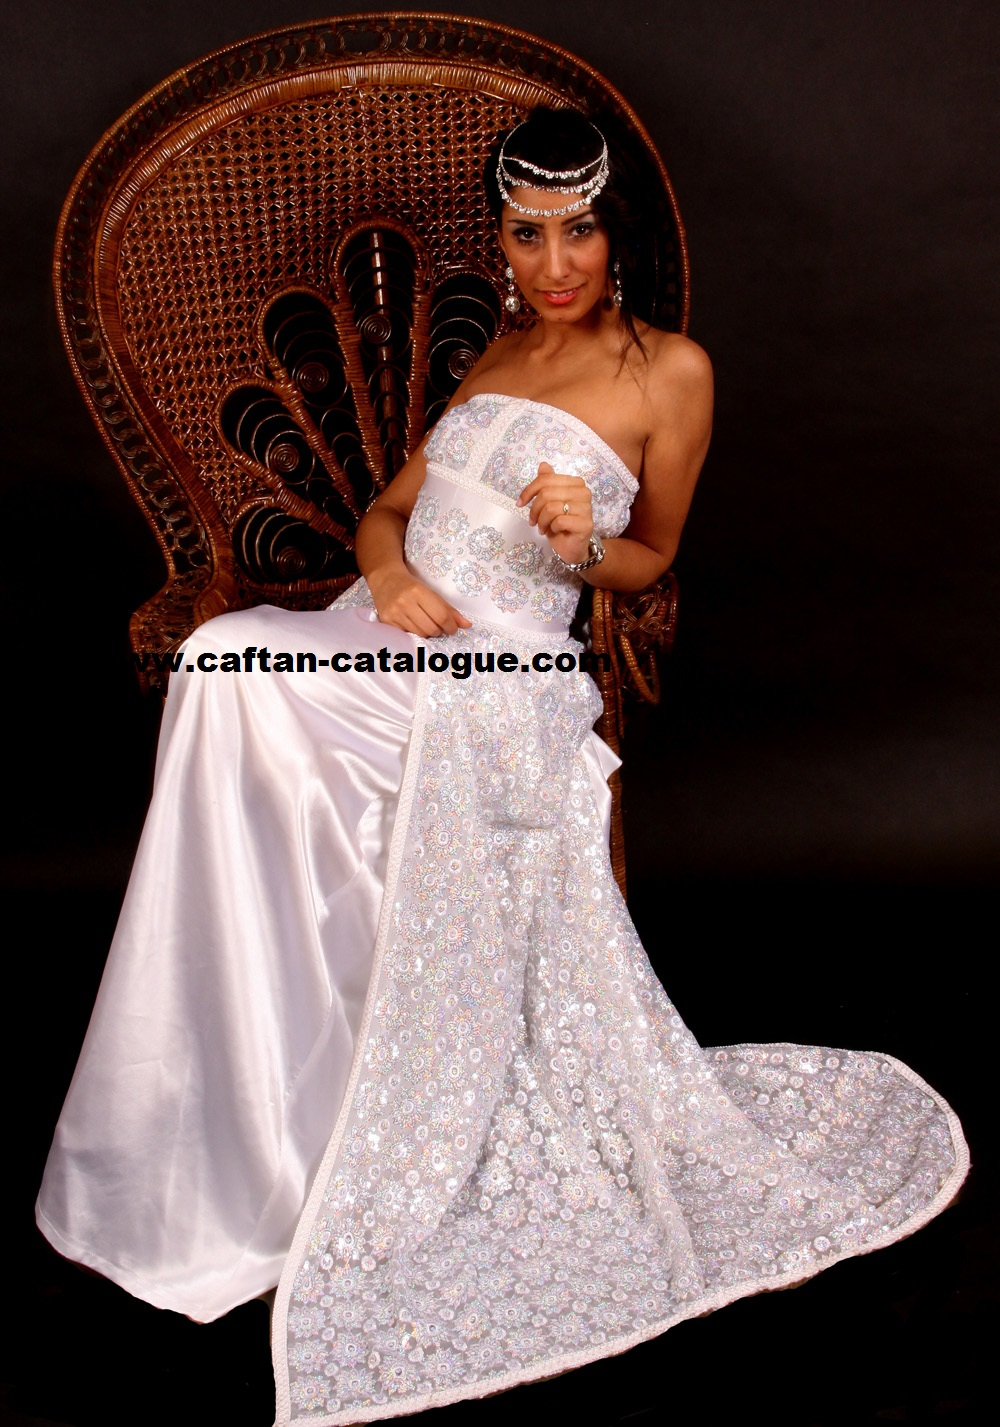 caftan de mariage haute couture prix moins cher caftan catalogue. Black Bedroom Furniture Sets. Home Design Ideas